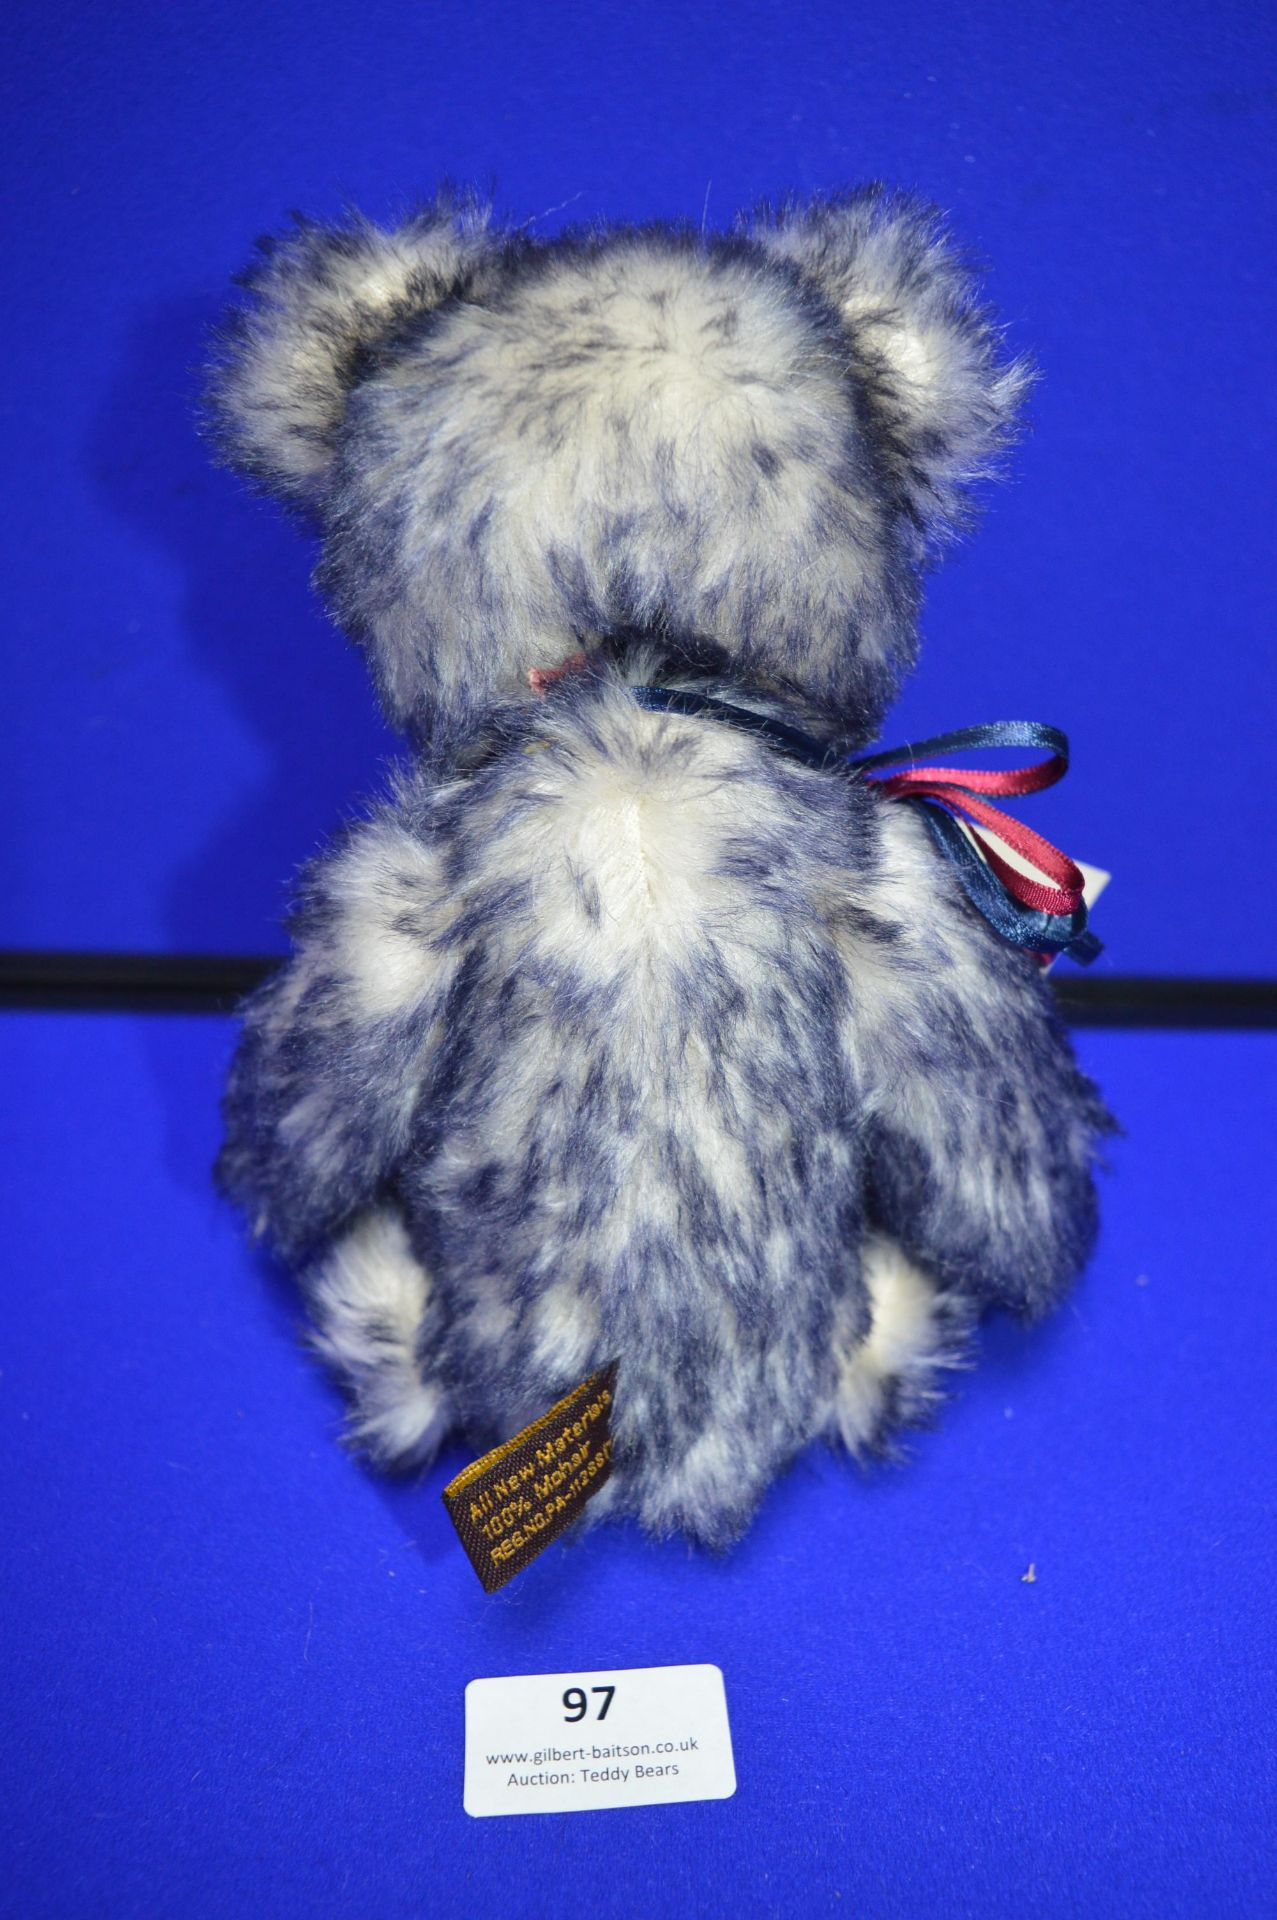 Isabelle Collection Limited Edition Blue Teddy Bear (26cm) - Image 3 of 3